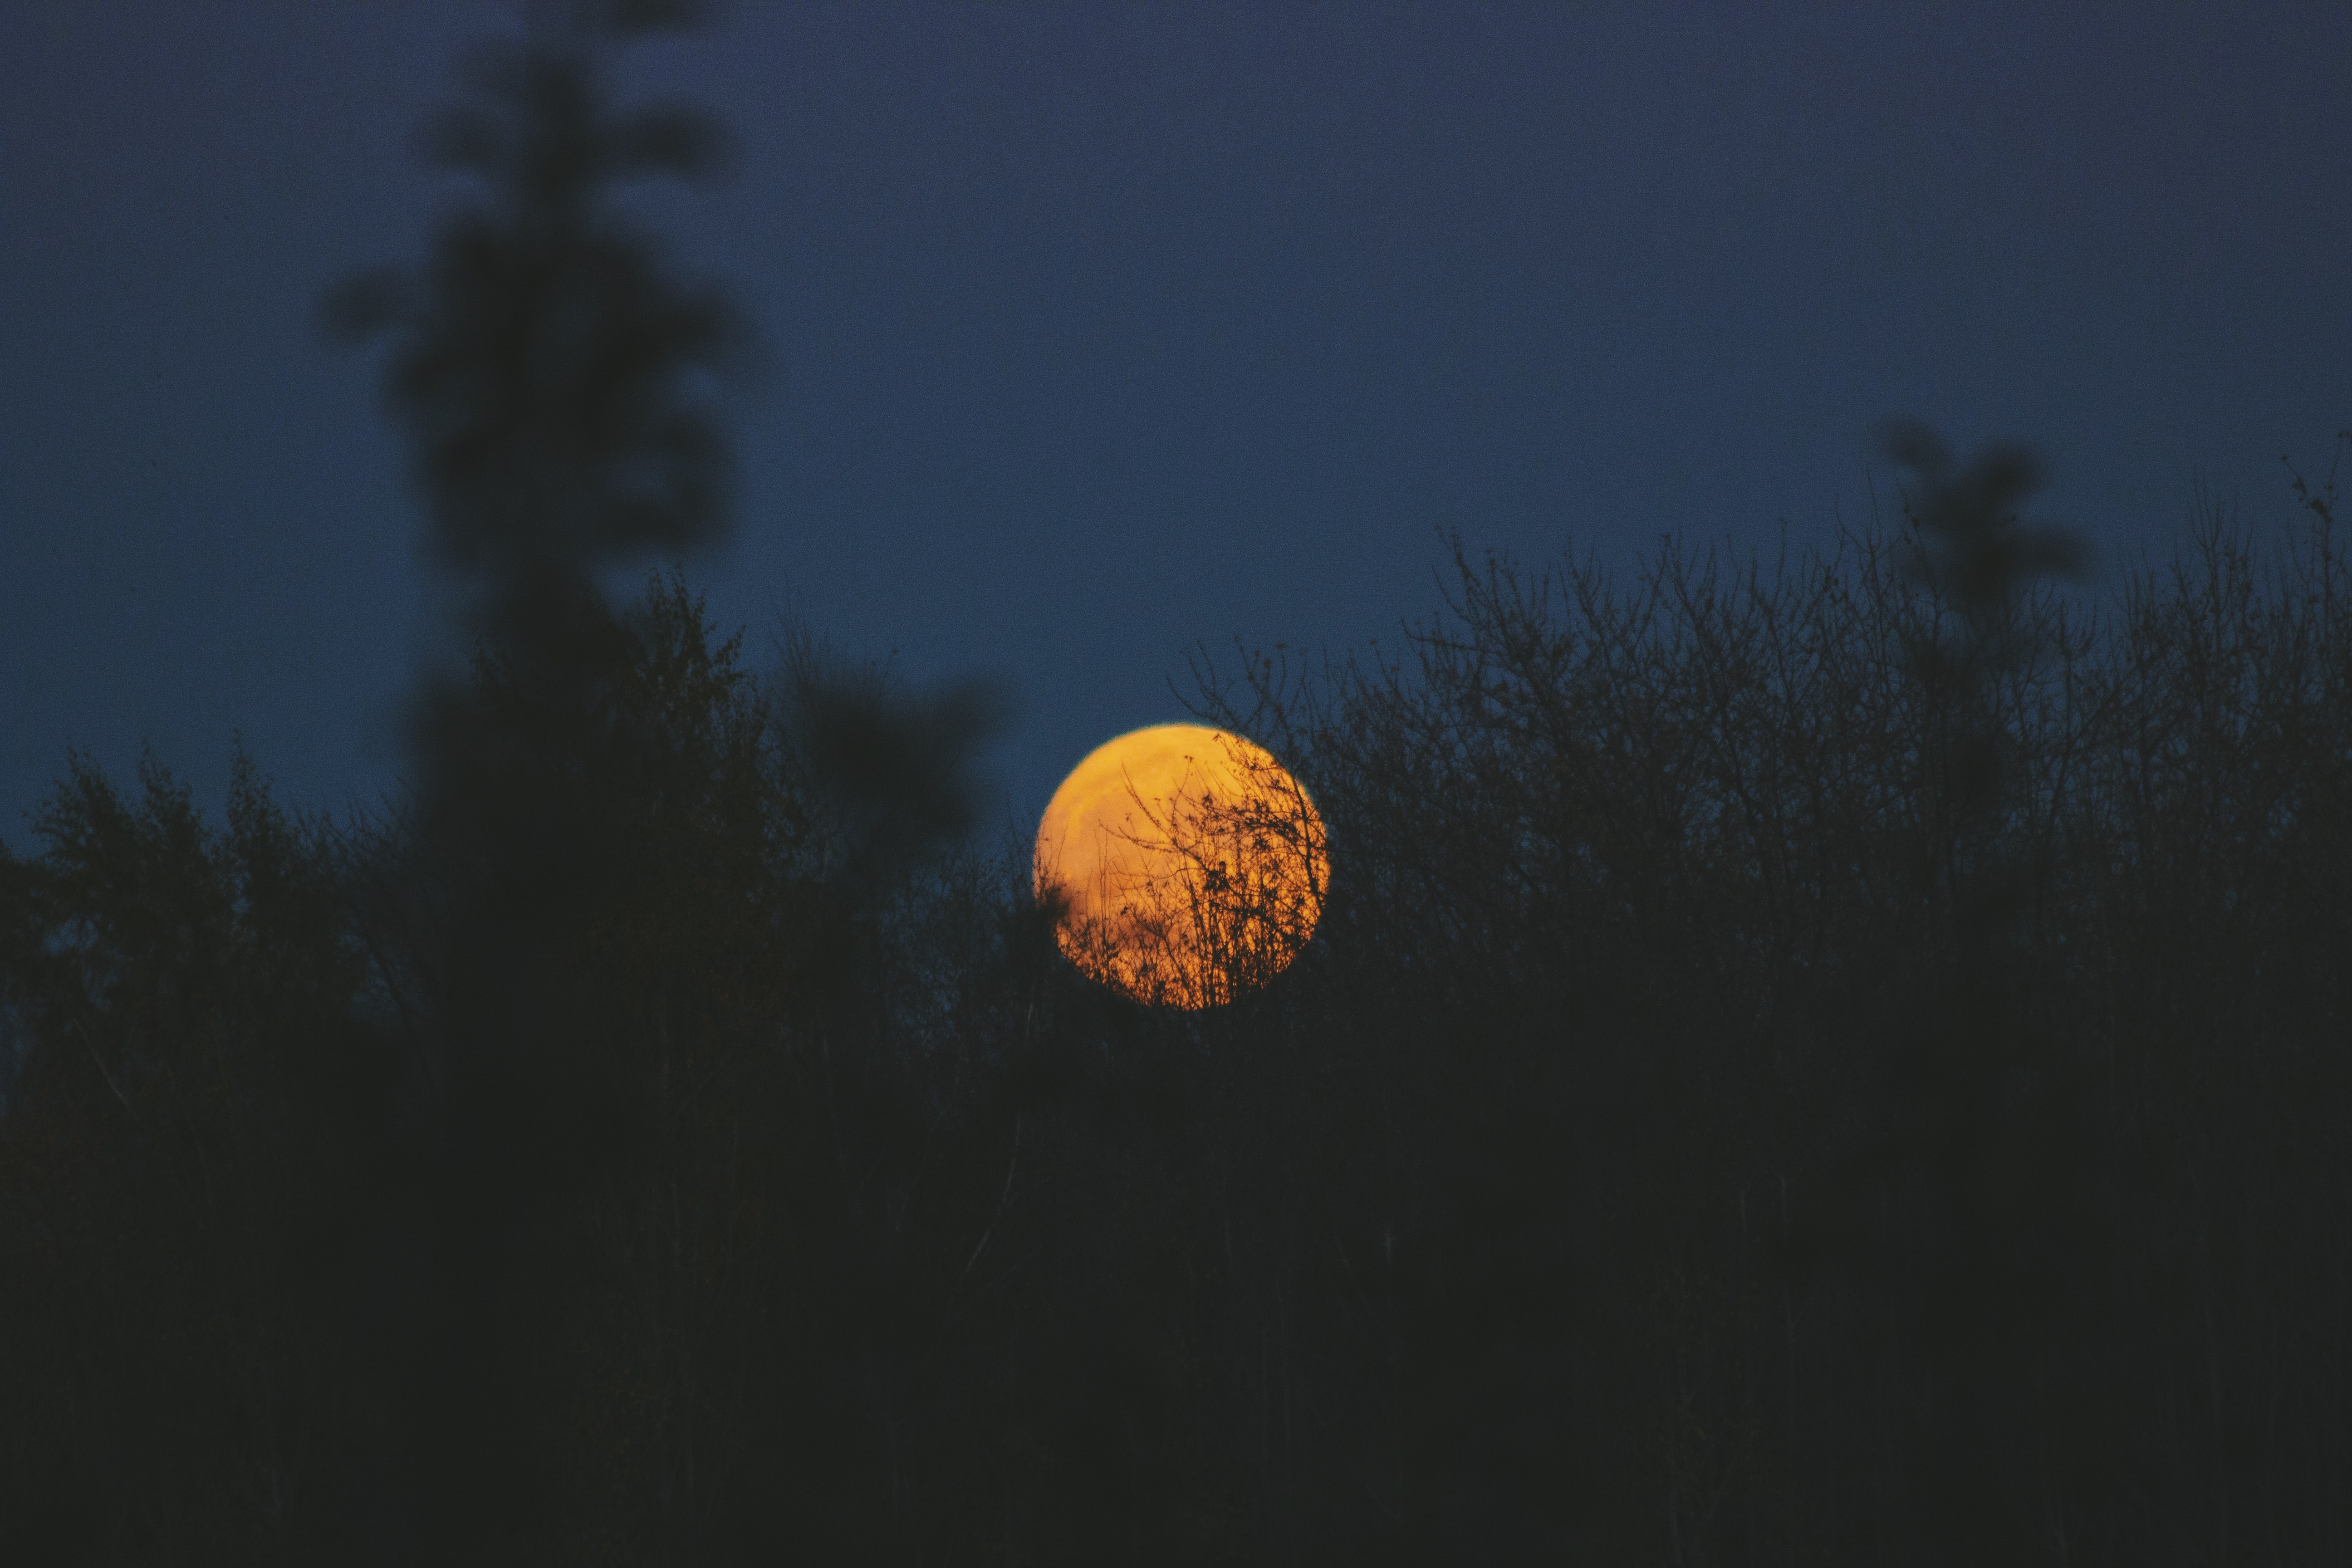 Silhouette trees lightly obscure the orange moon in a gray night sky